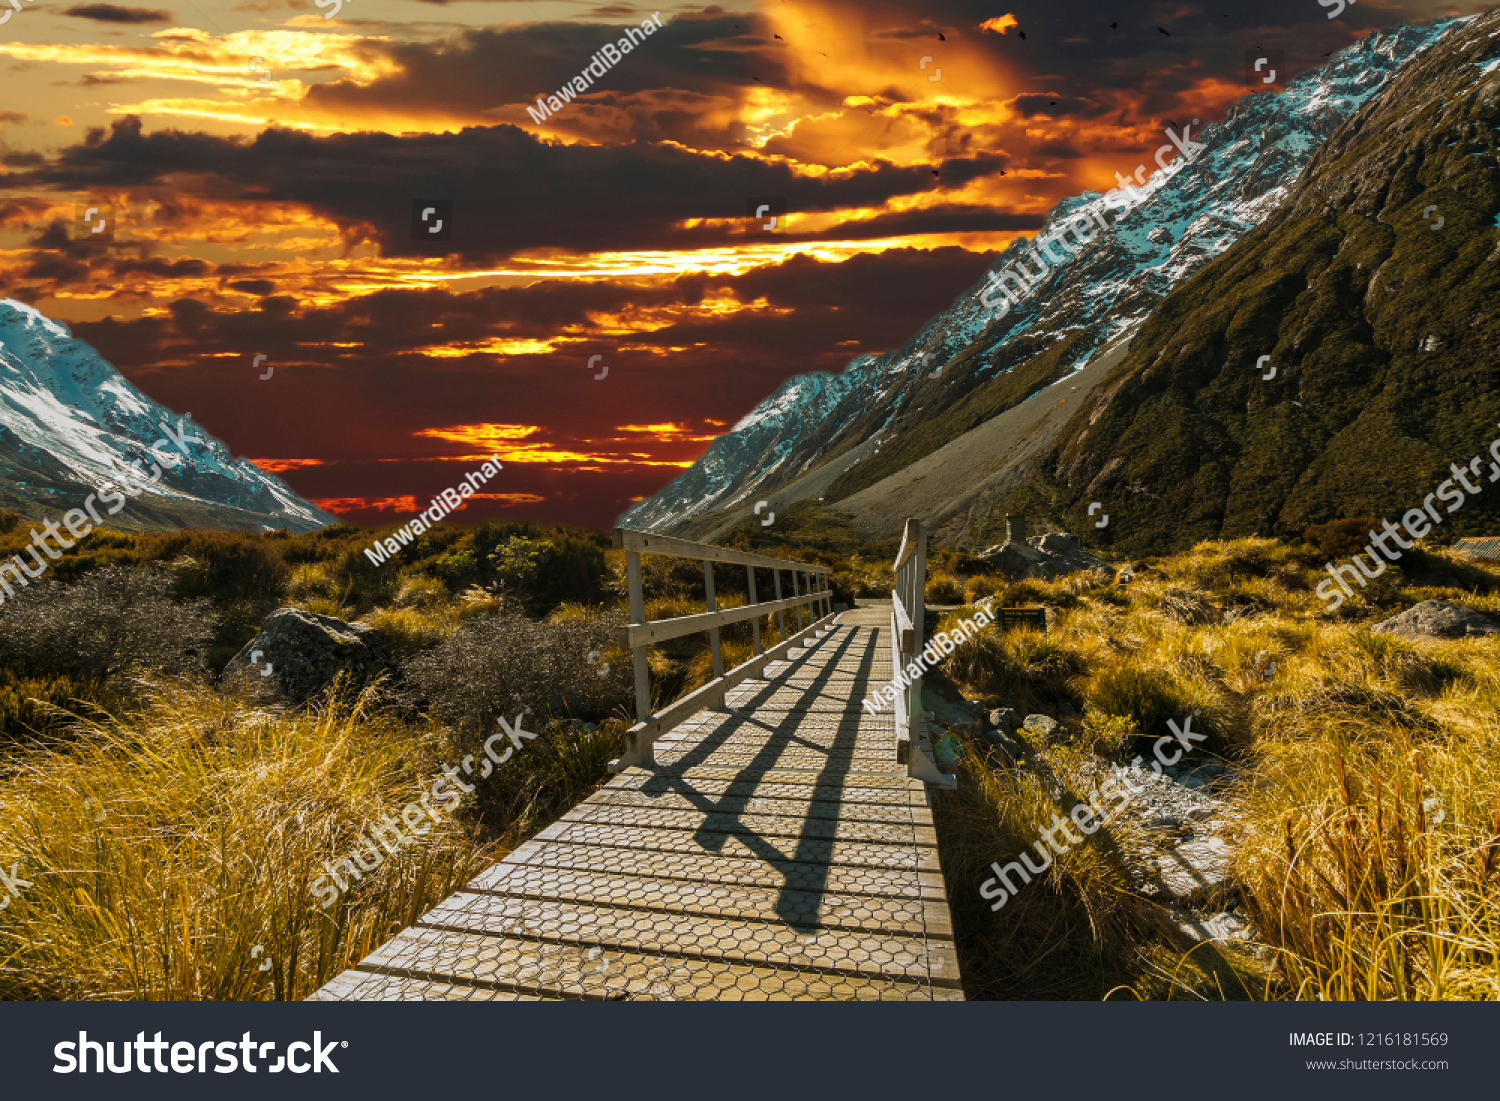 Pedestrian walkway with sunset background #1216181569